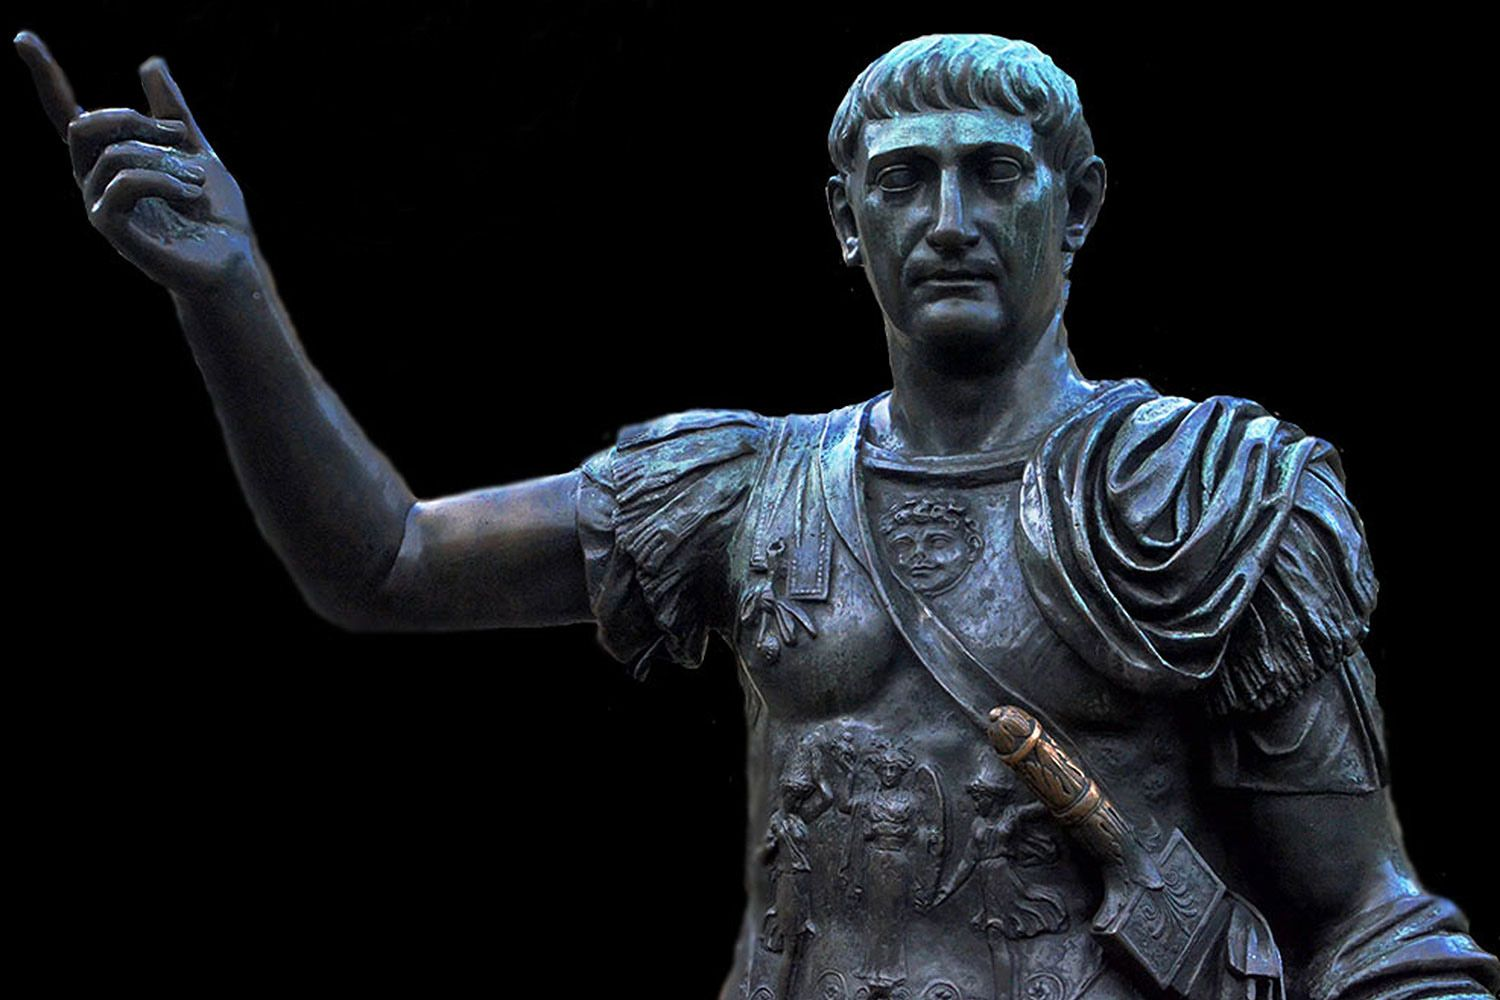 Who was Rome's most Celebrated Emperor?